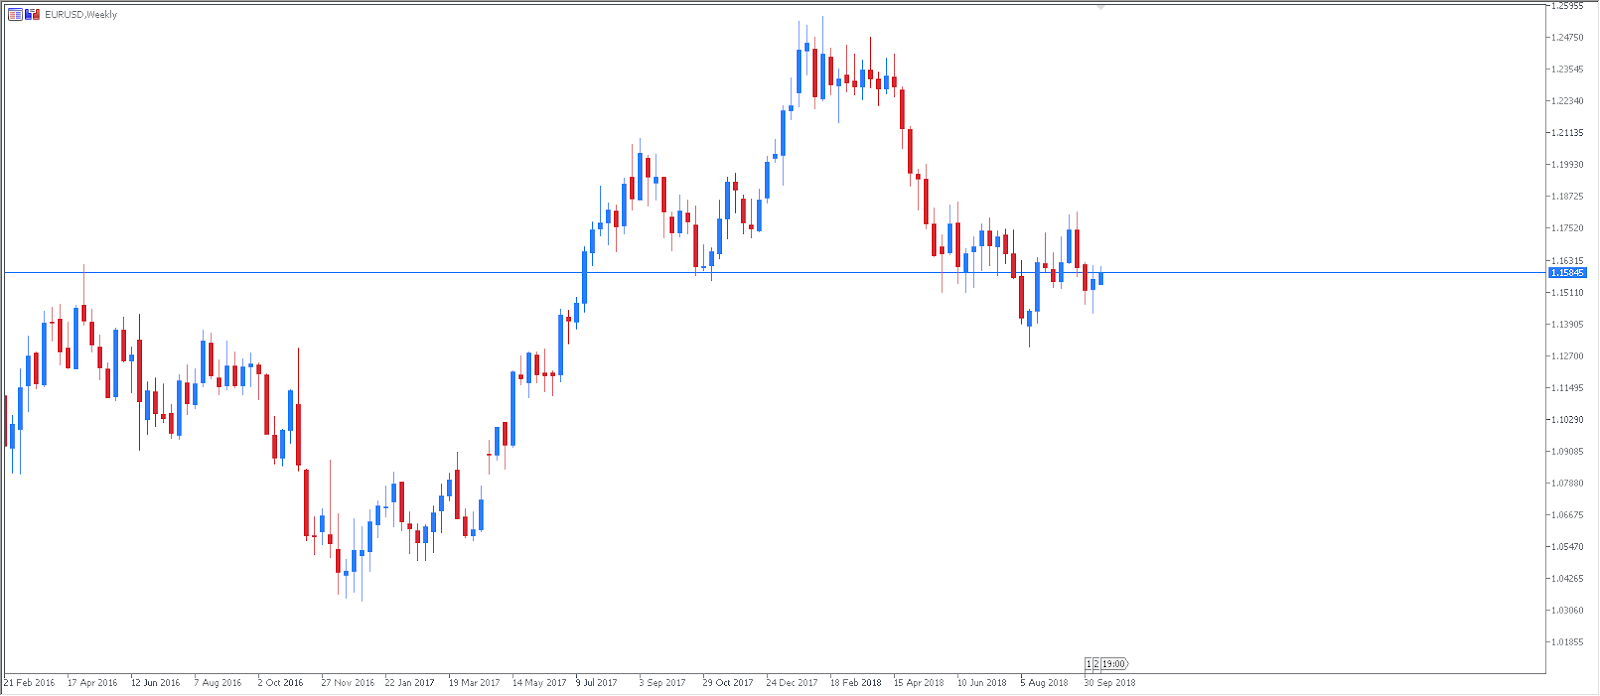 EURUSD Weekly Chart - Technical Analysis